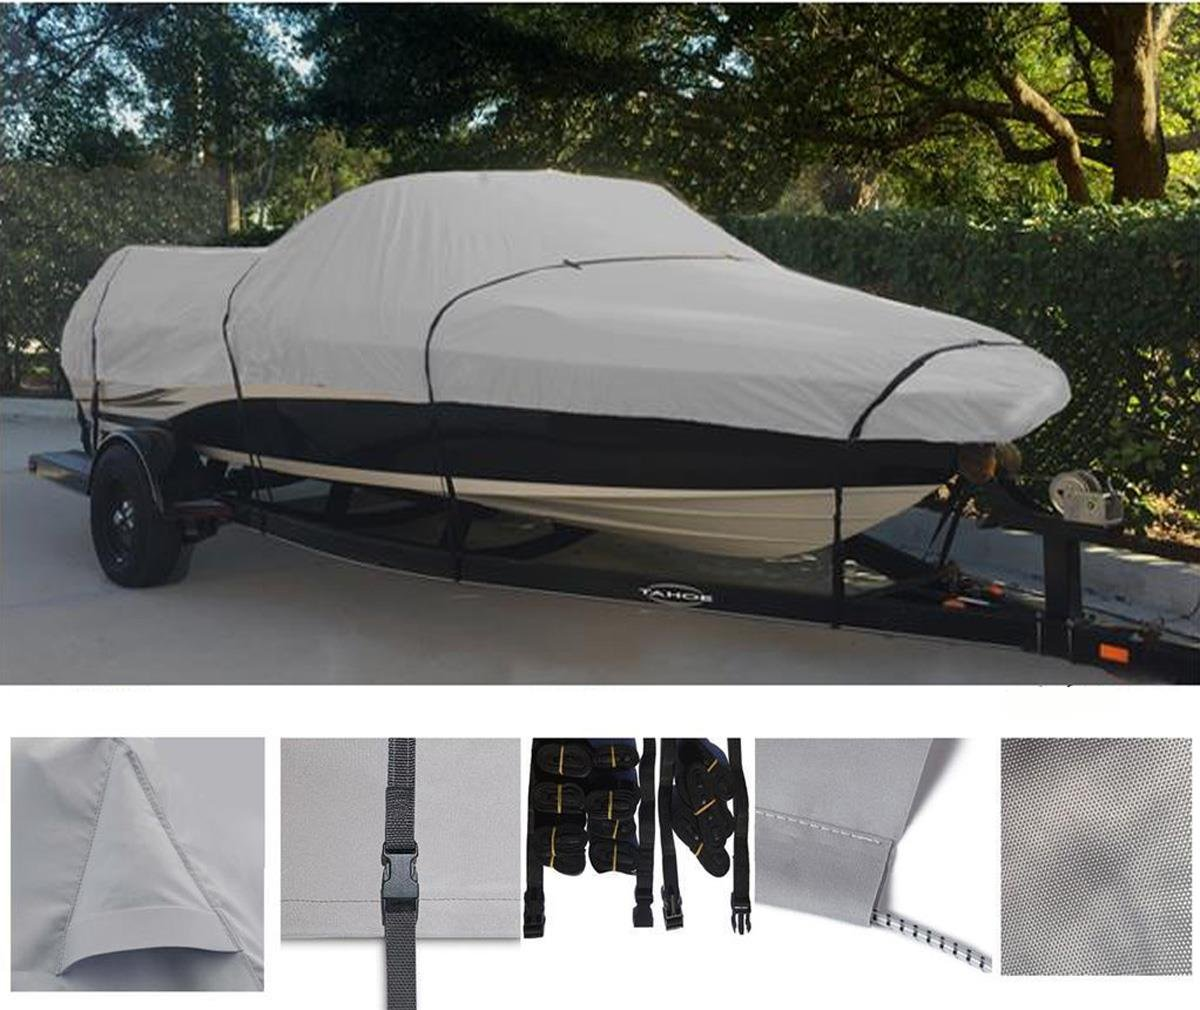 GREY, STORAGE, TRAVEL, MOORING BOAT COVER FOR Yamaha LS 2000 LS2000 XP 1999 2000 2001 2002 2003 JET by SBU